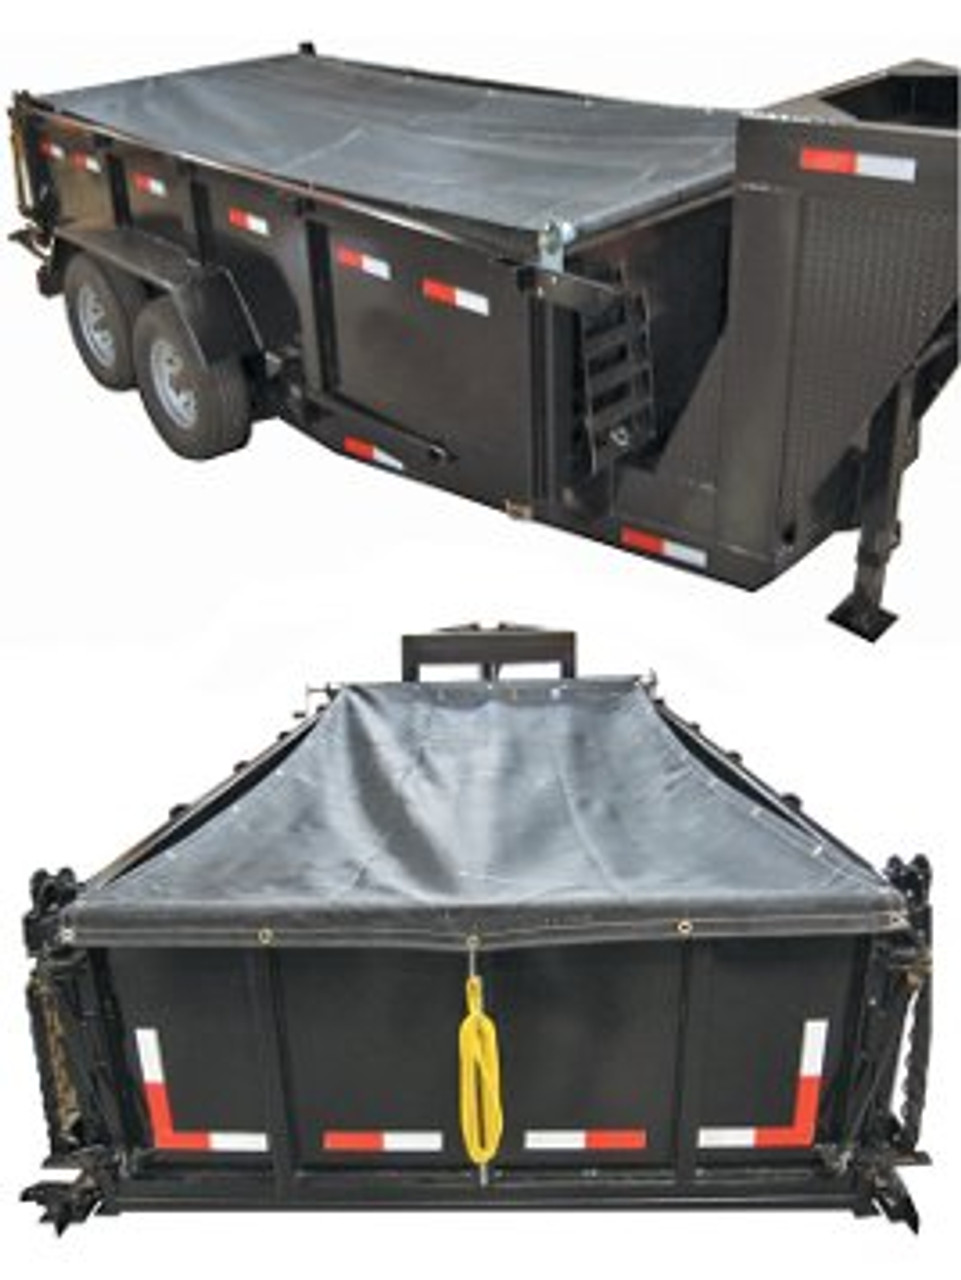 DTTK12 --- 6-1/2' x 15' Dump Trailer Tarp Kit